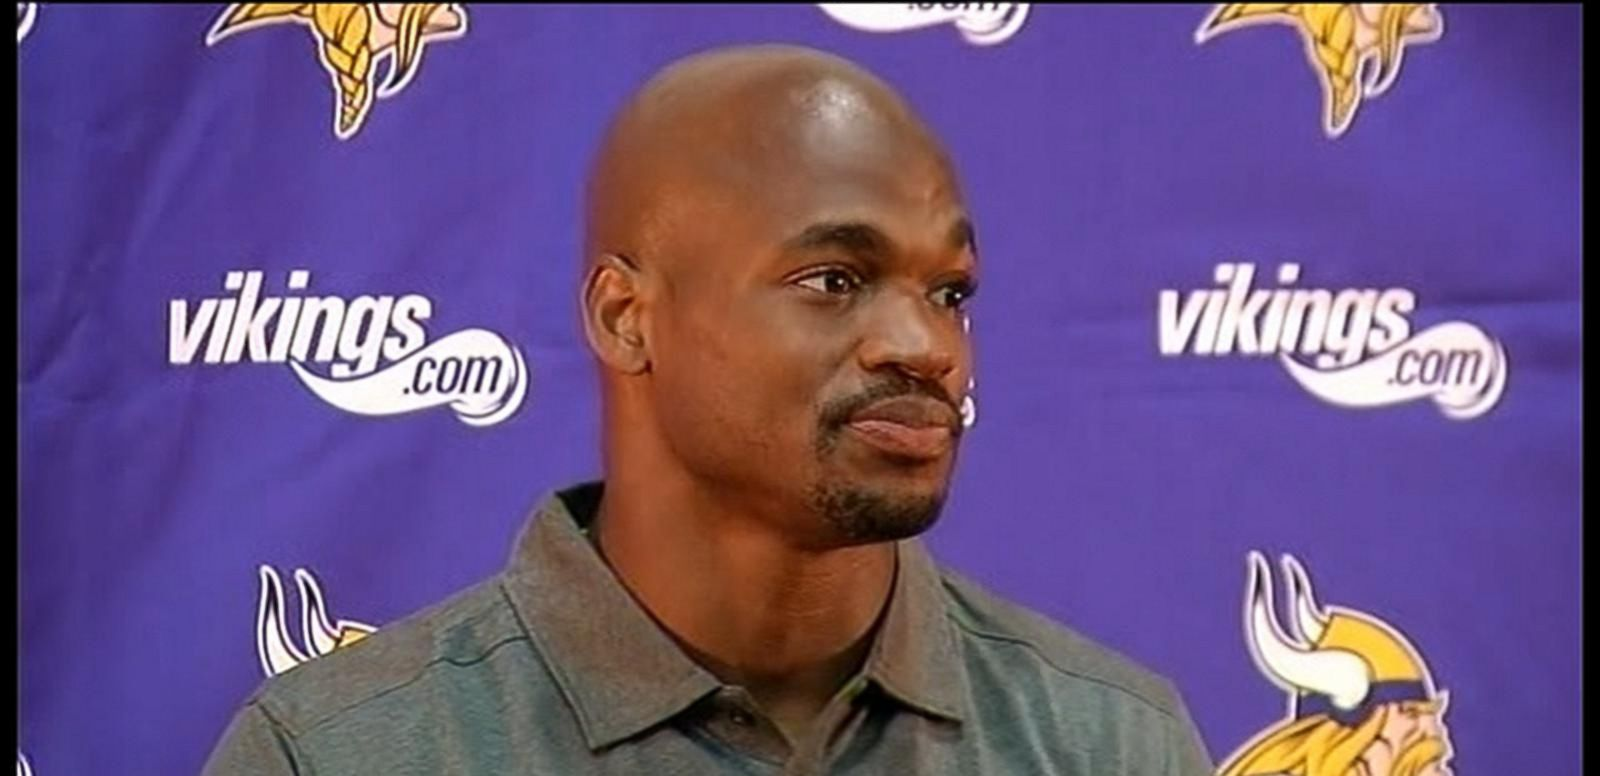 VIDEO: NFL's Adrian Peterson Returns to Vikings